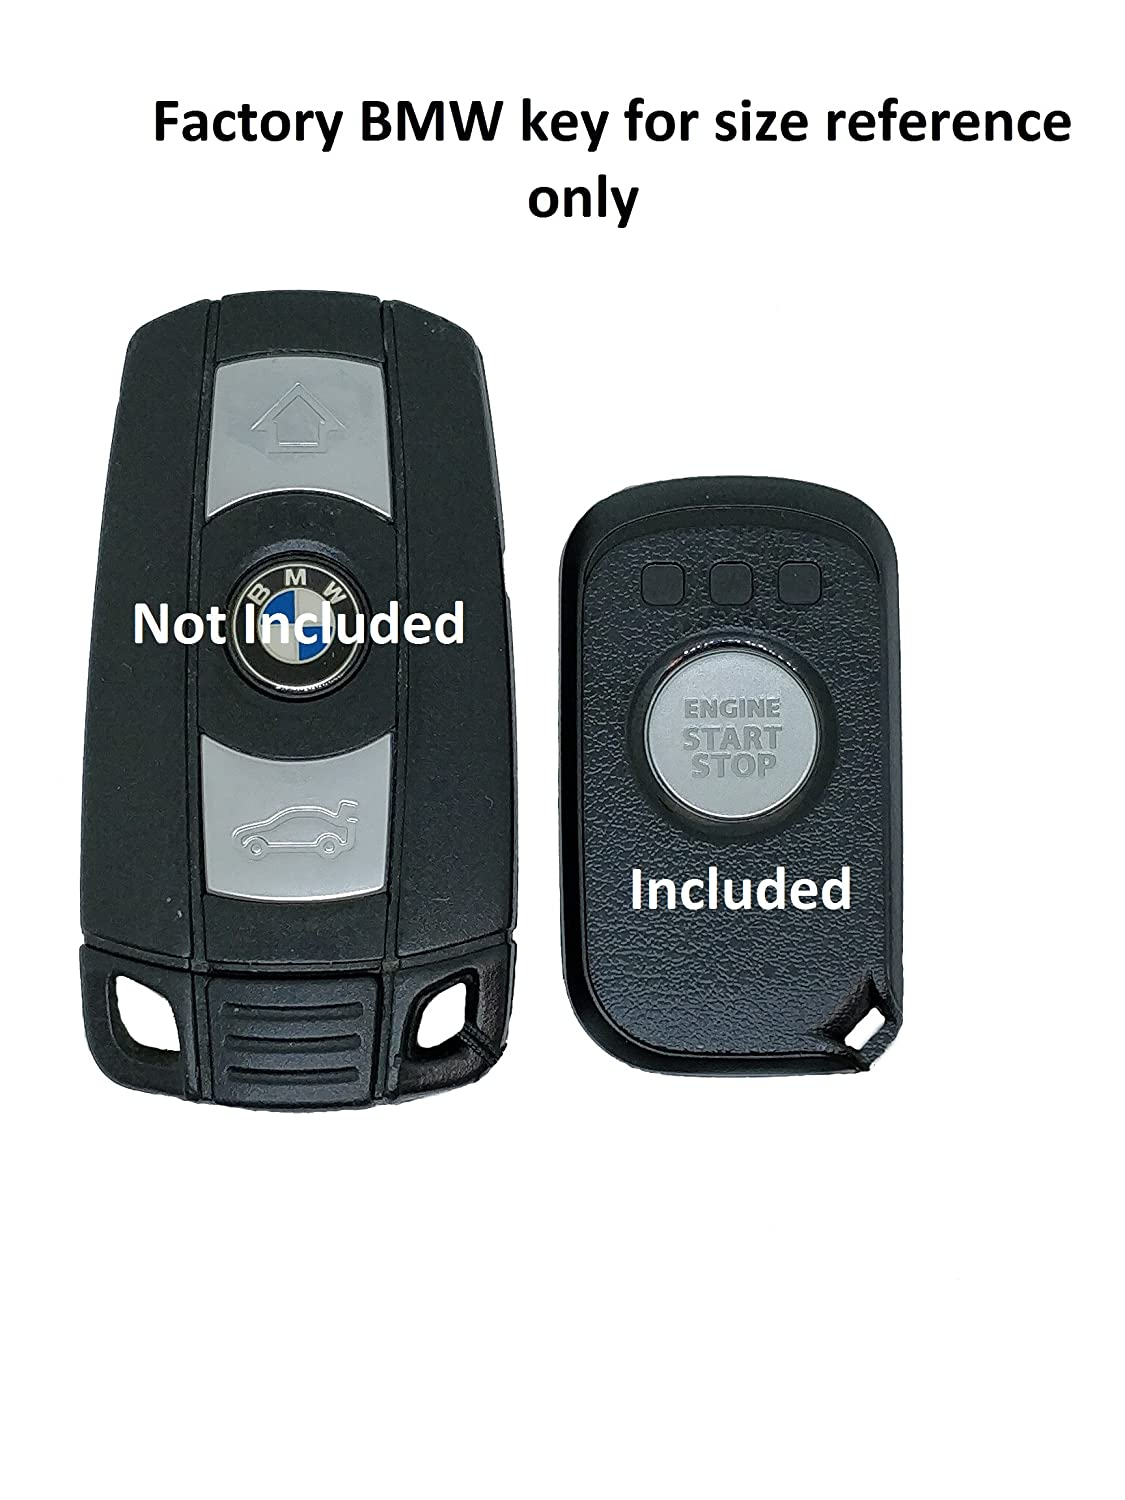 Idatastart Ads Bm1 Remote Start Kit For Select 2005 2013 Infiniti Starter Bmw And Mini Vehicles Cell Phones Accessories